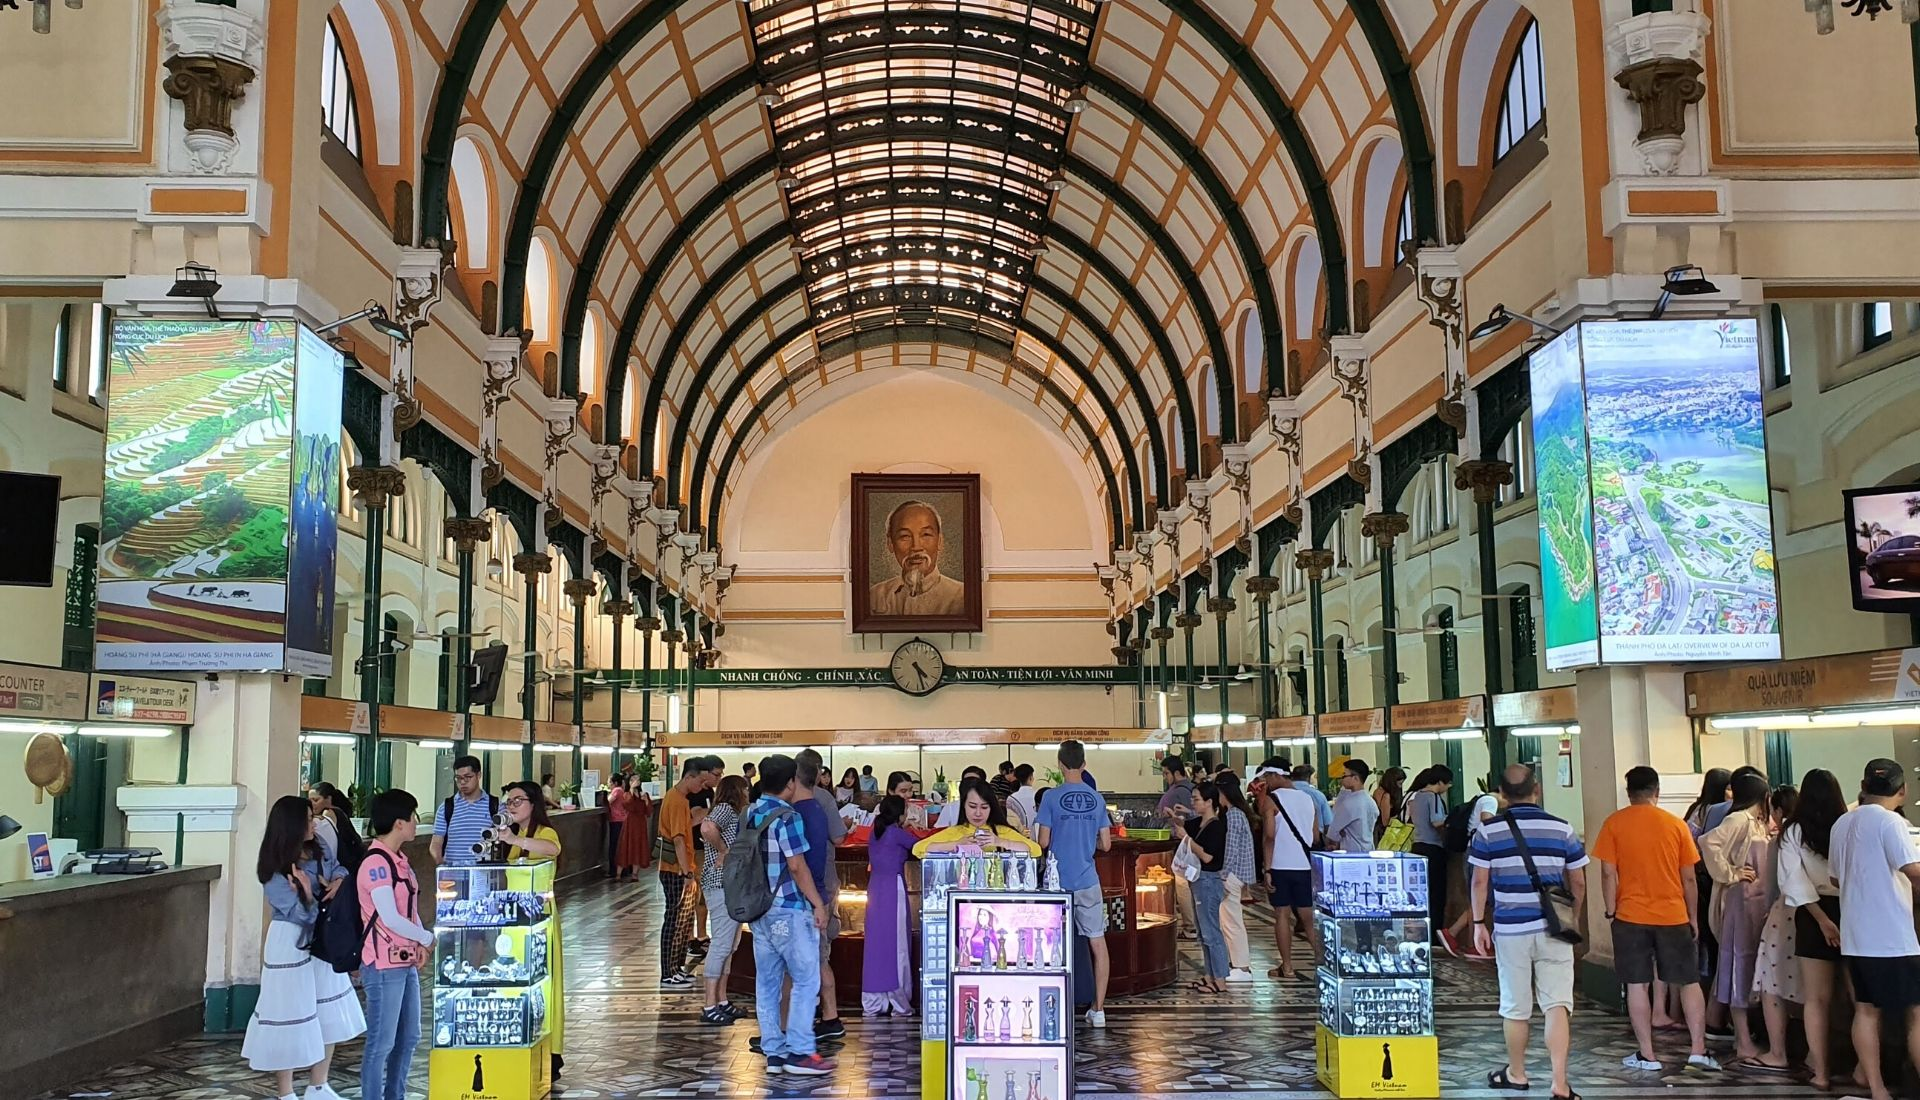 Inside the Central Post Office - 5 days in Saigon